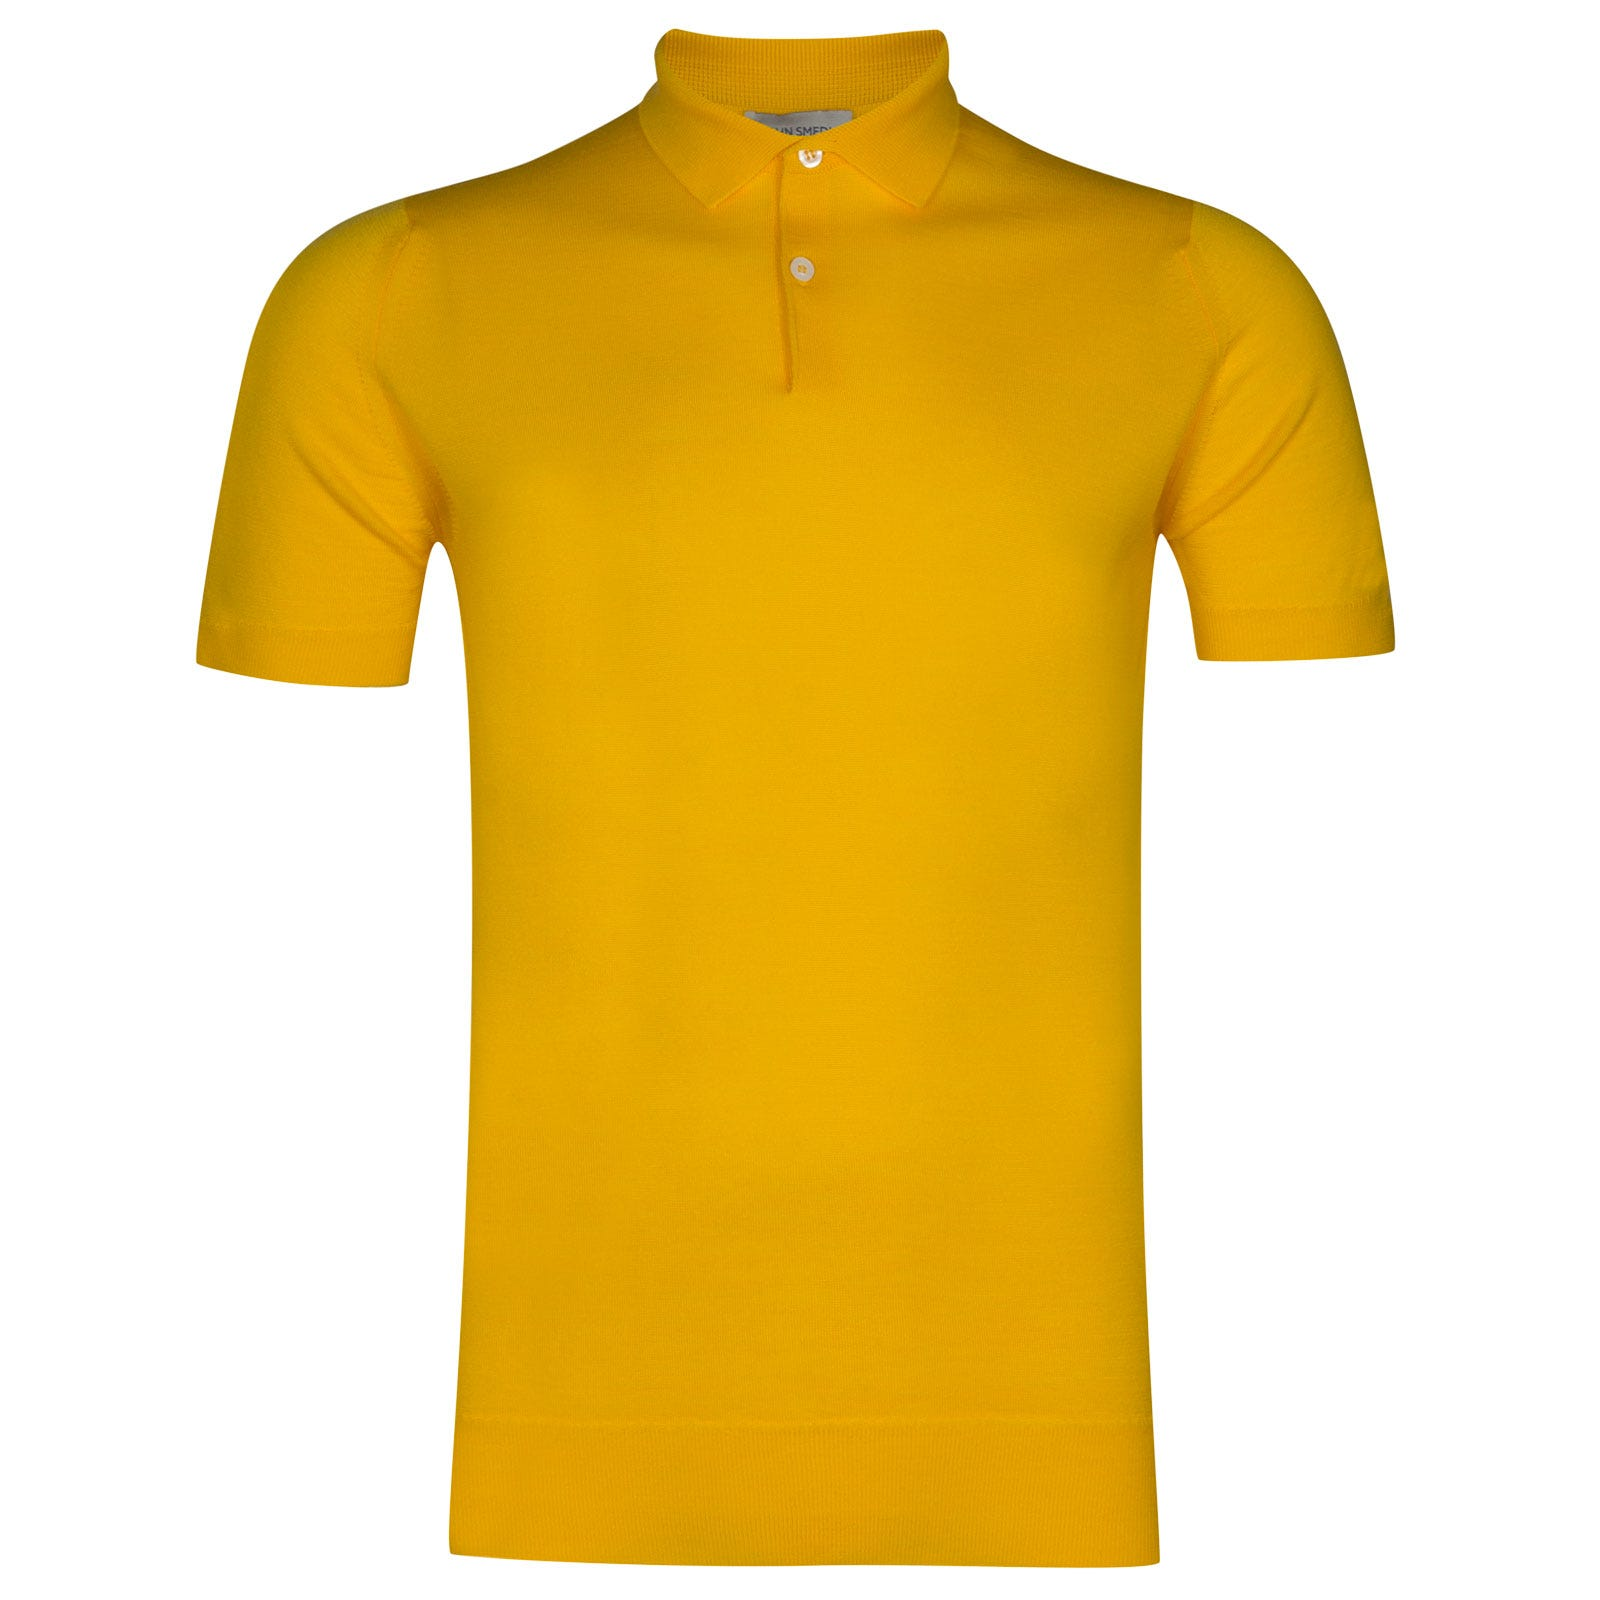 John Smedley payton Merino Wool Shirt in Meadow Yellow-L